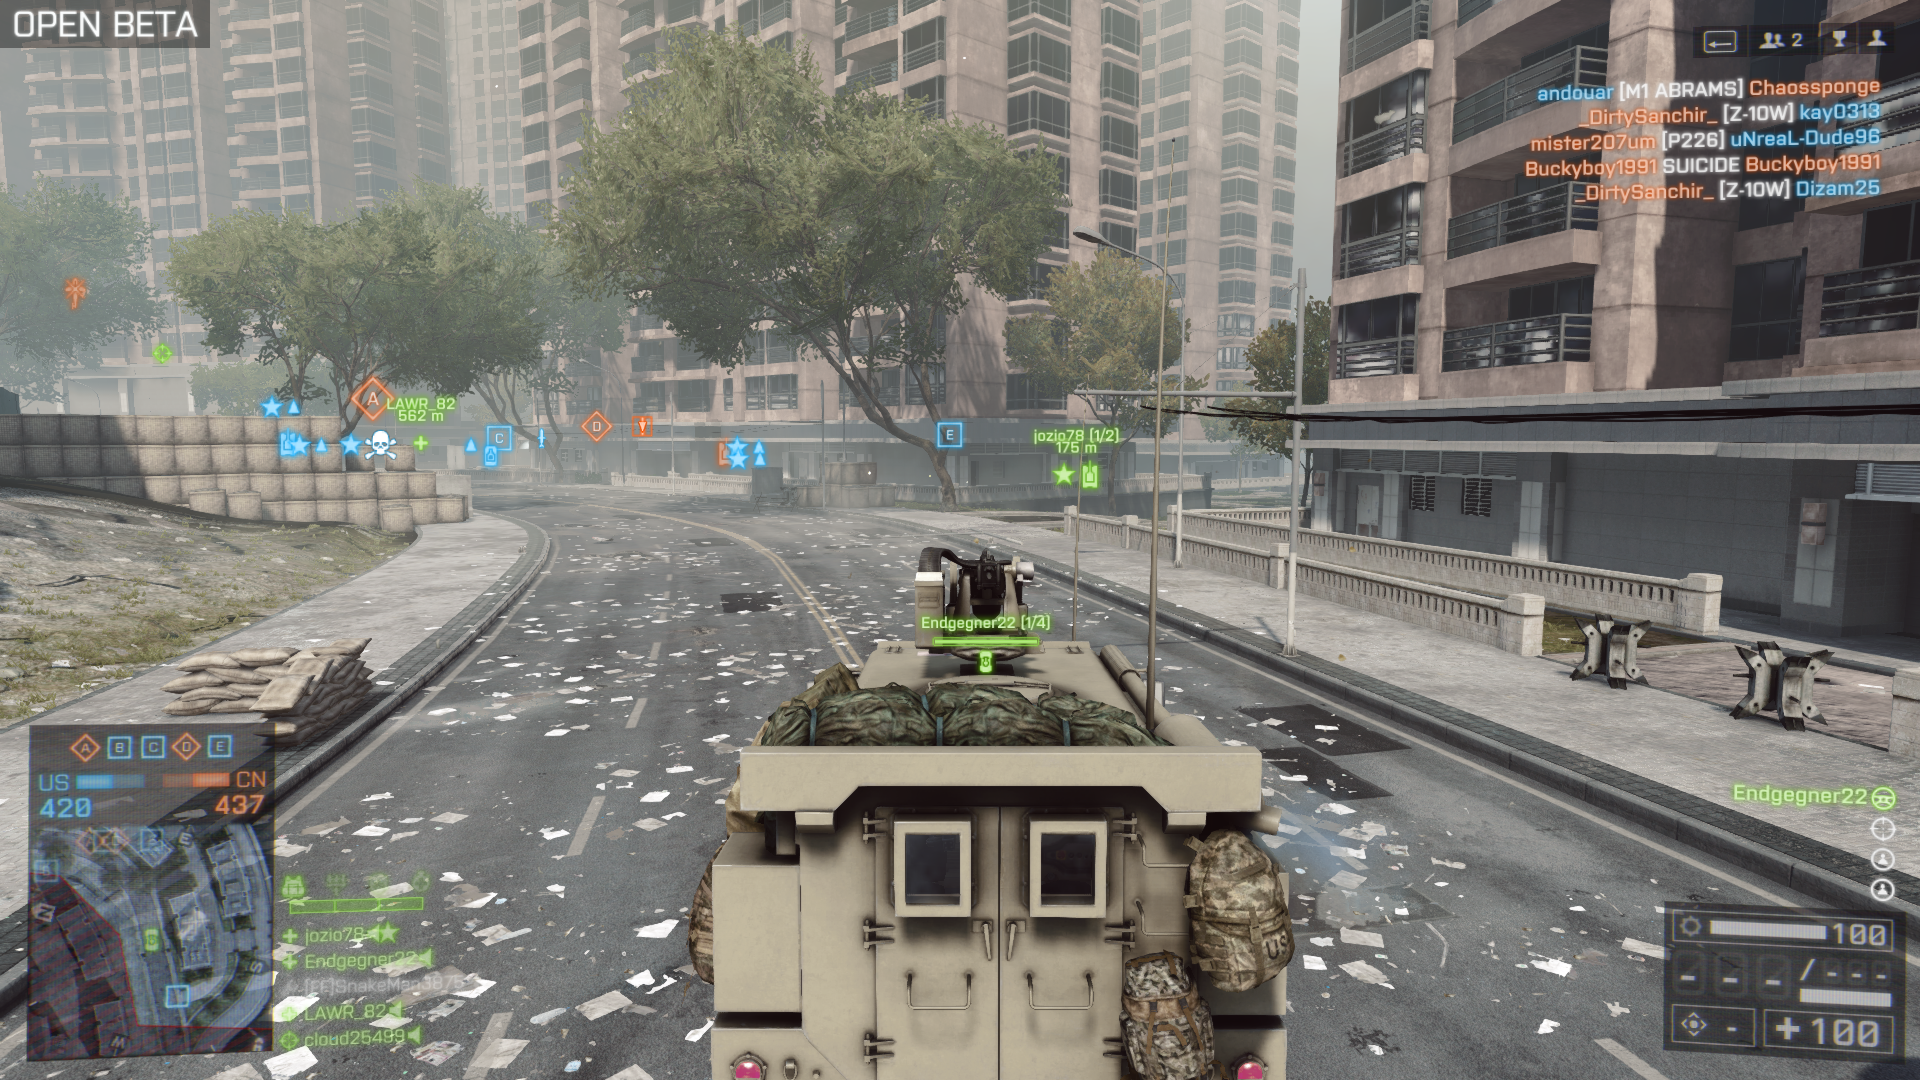 http://endgegner.fightercom.de/BF4_Screenshot/Battlefield4OpenBeta09.png